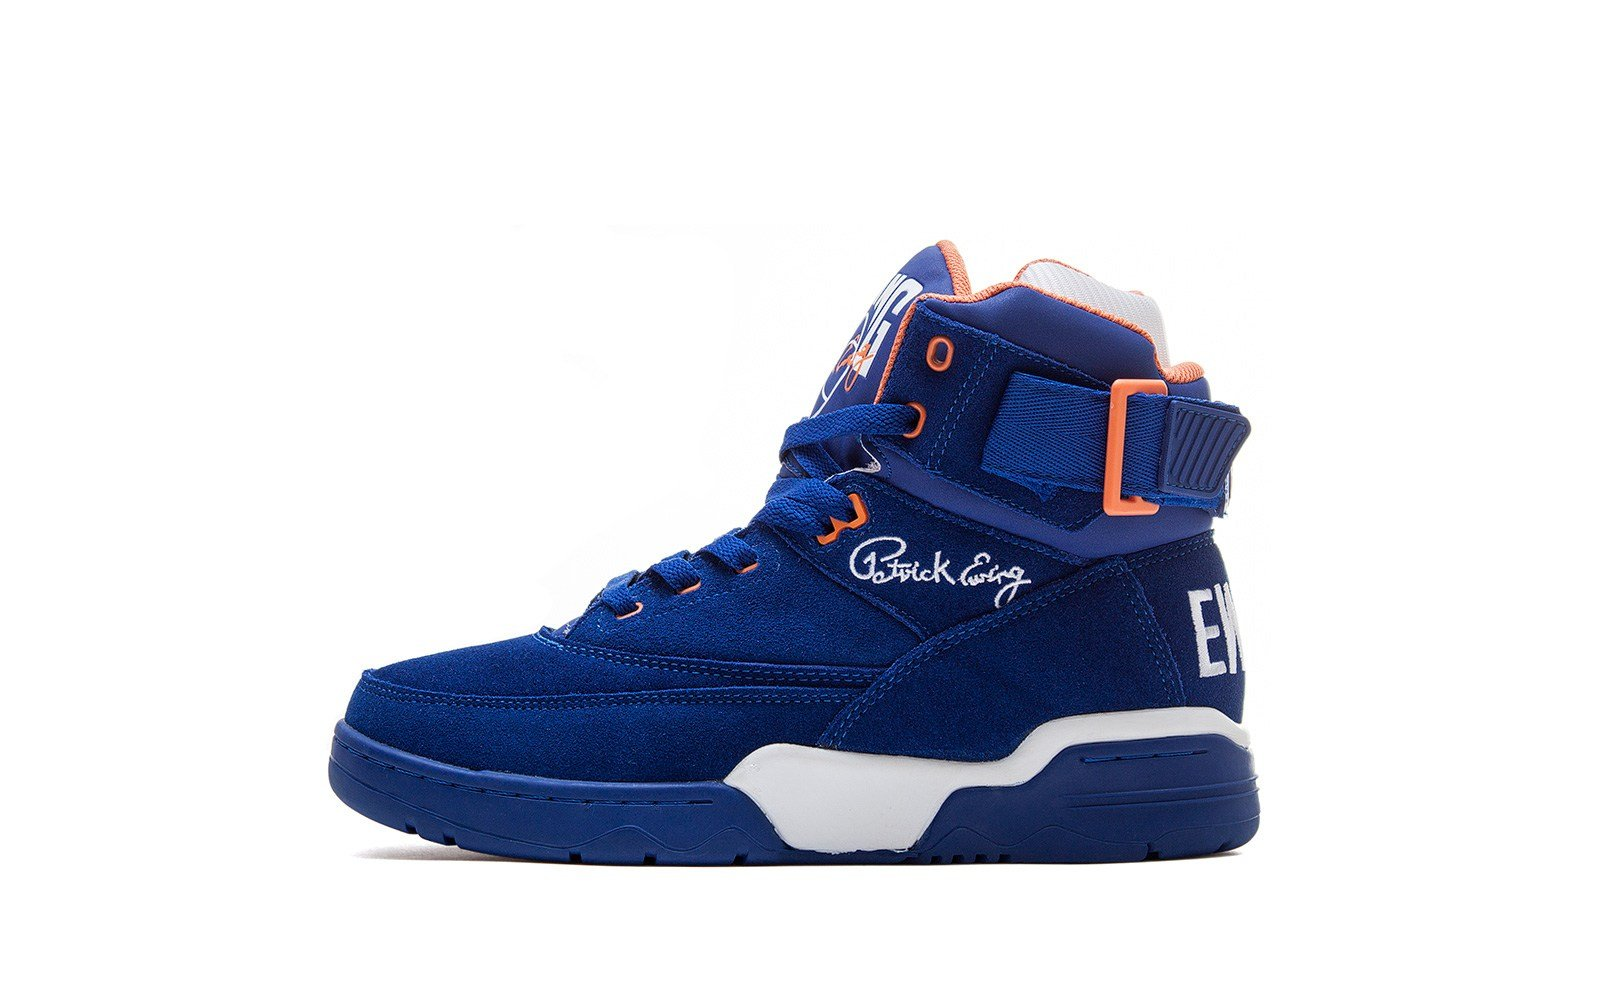 Ewing 33 Hi 'Blue Suede' at Sneakersnstuff